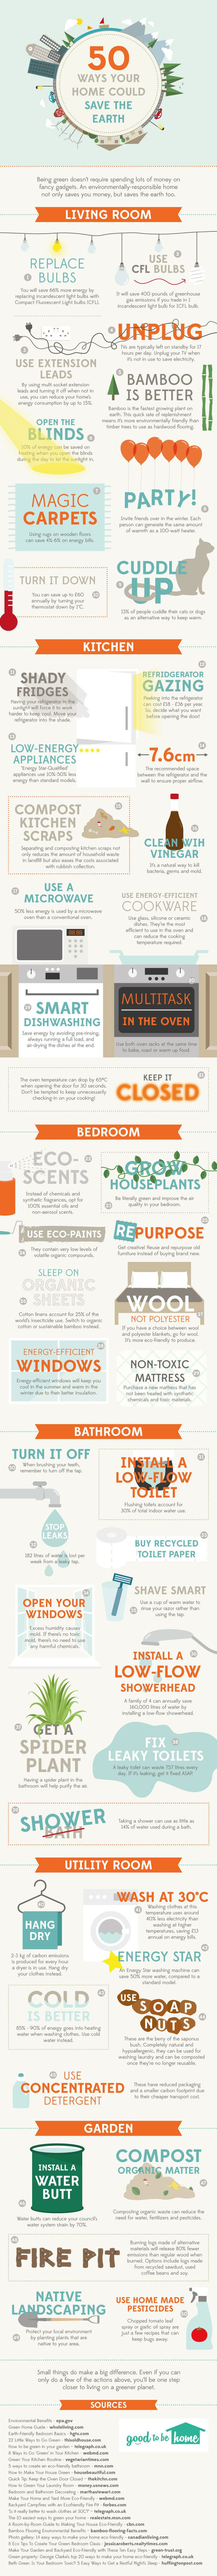 50 ways your Home could save the Earth.  Small things do make a big difference. Even if you can only do a few of the actions above, you 'll be one step closer to living on greener planet.